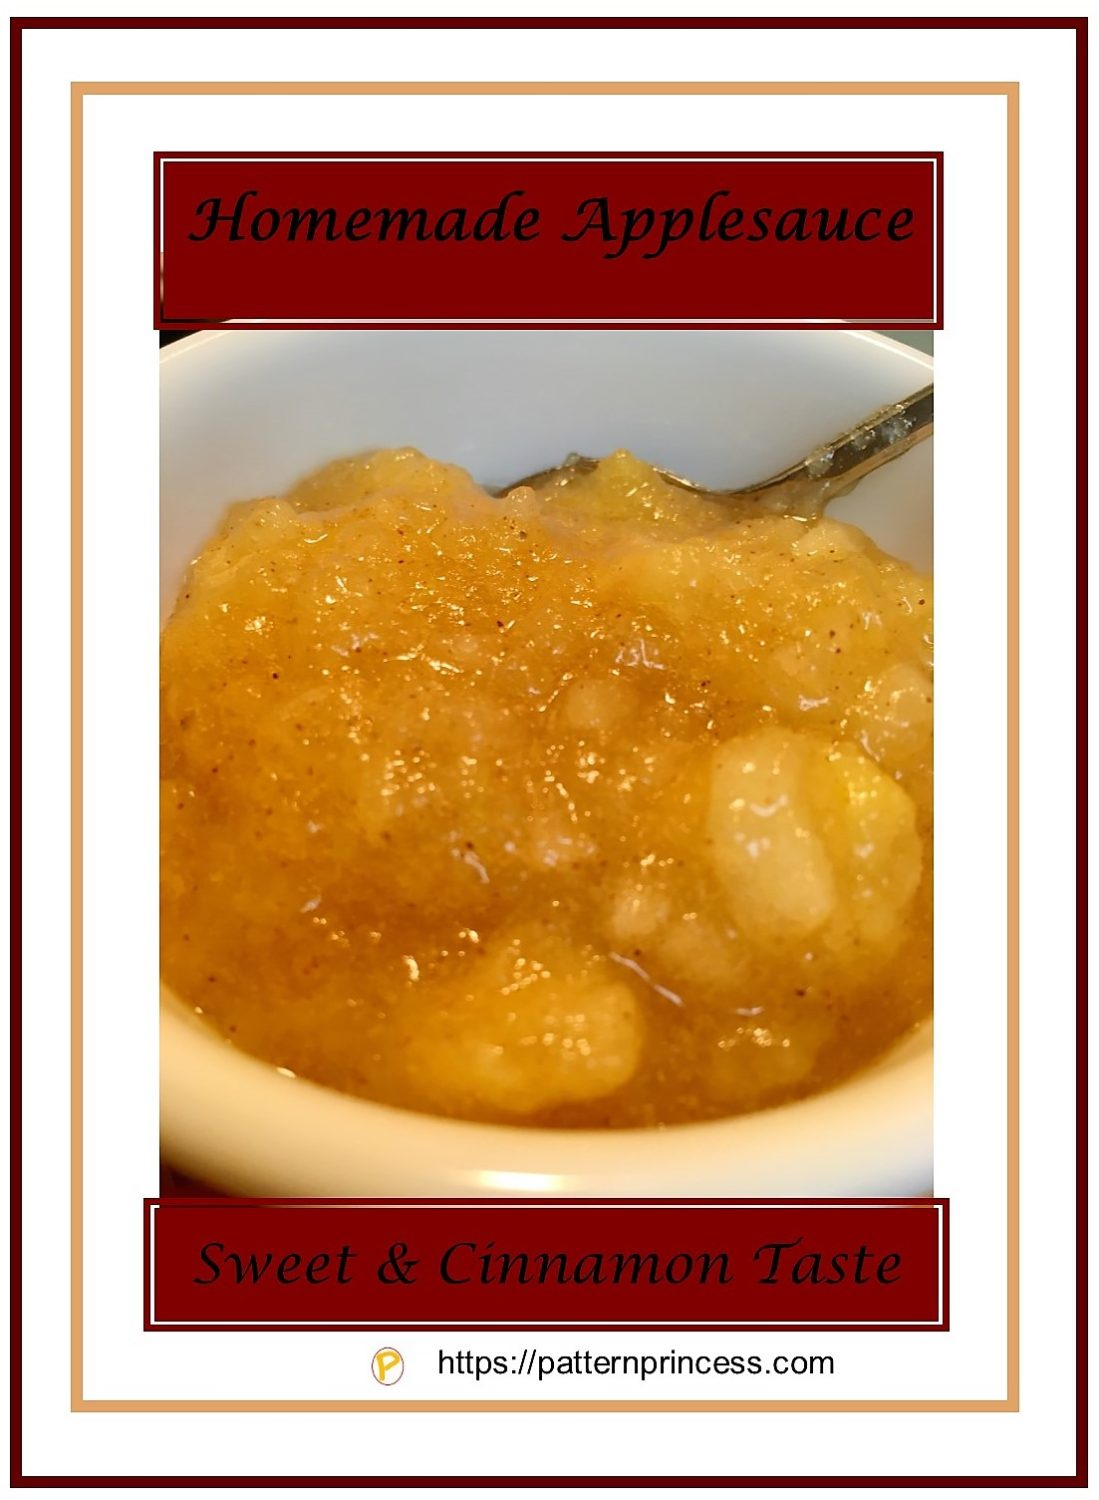 Homemade Applesauce 1